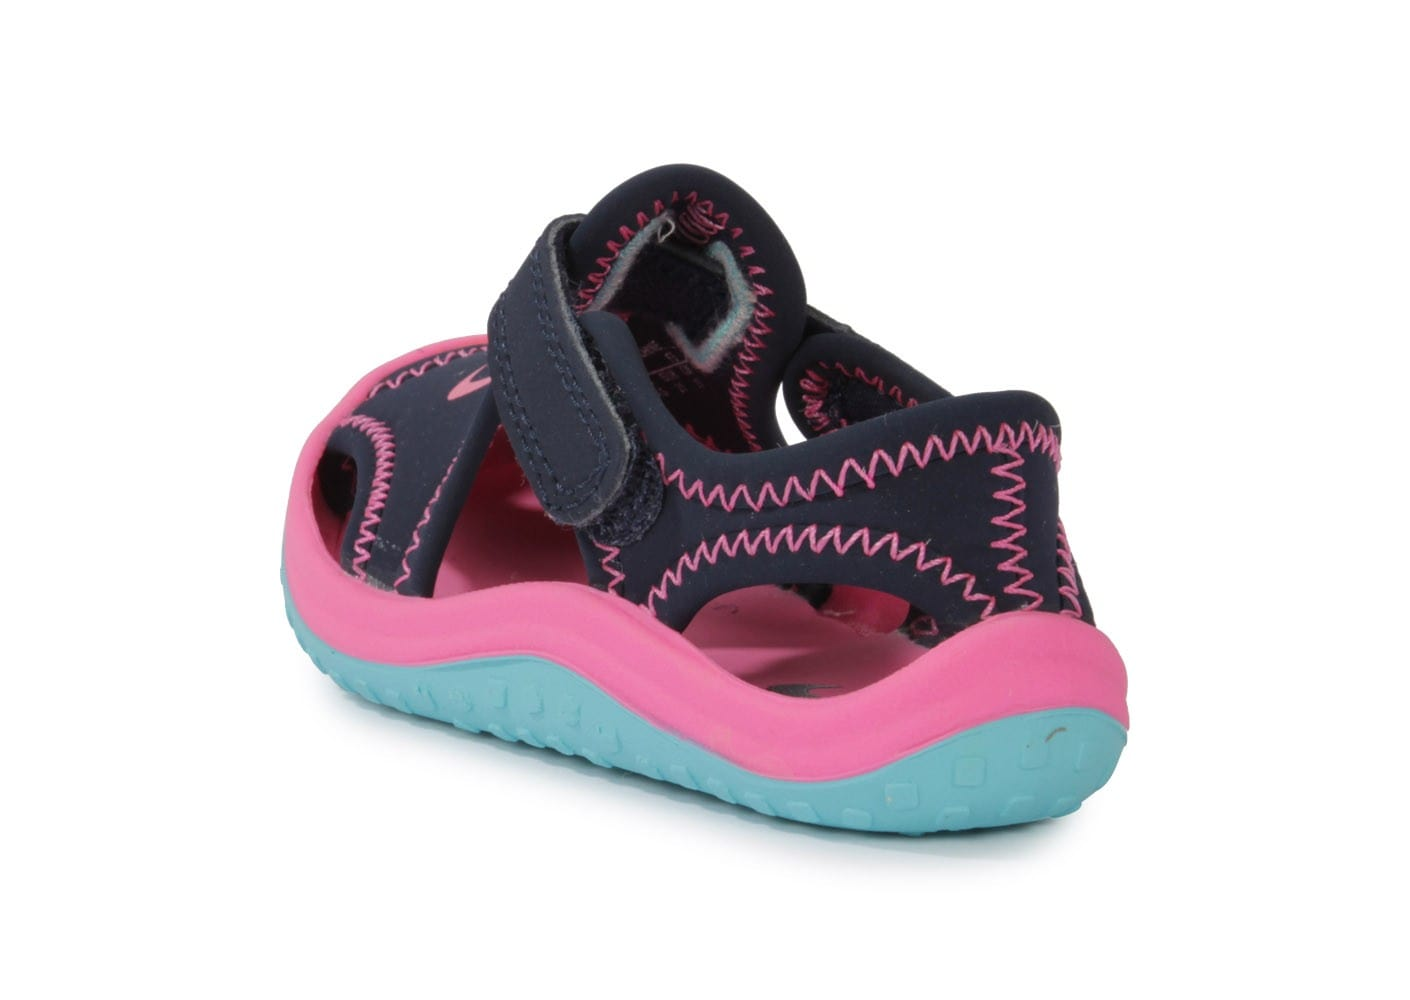 e7610b0a14a ... chaussures nike sunray protect bebe bleu rose vue arriere